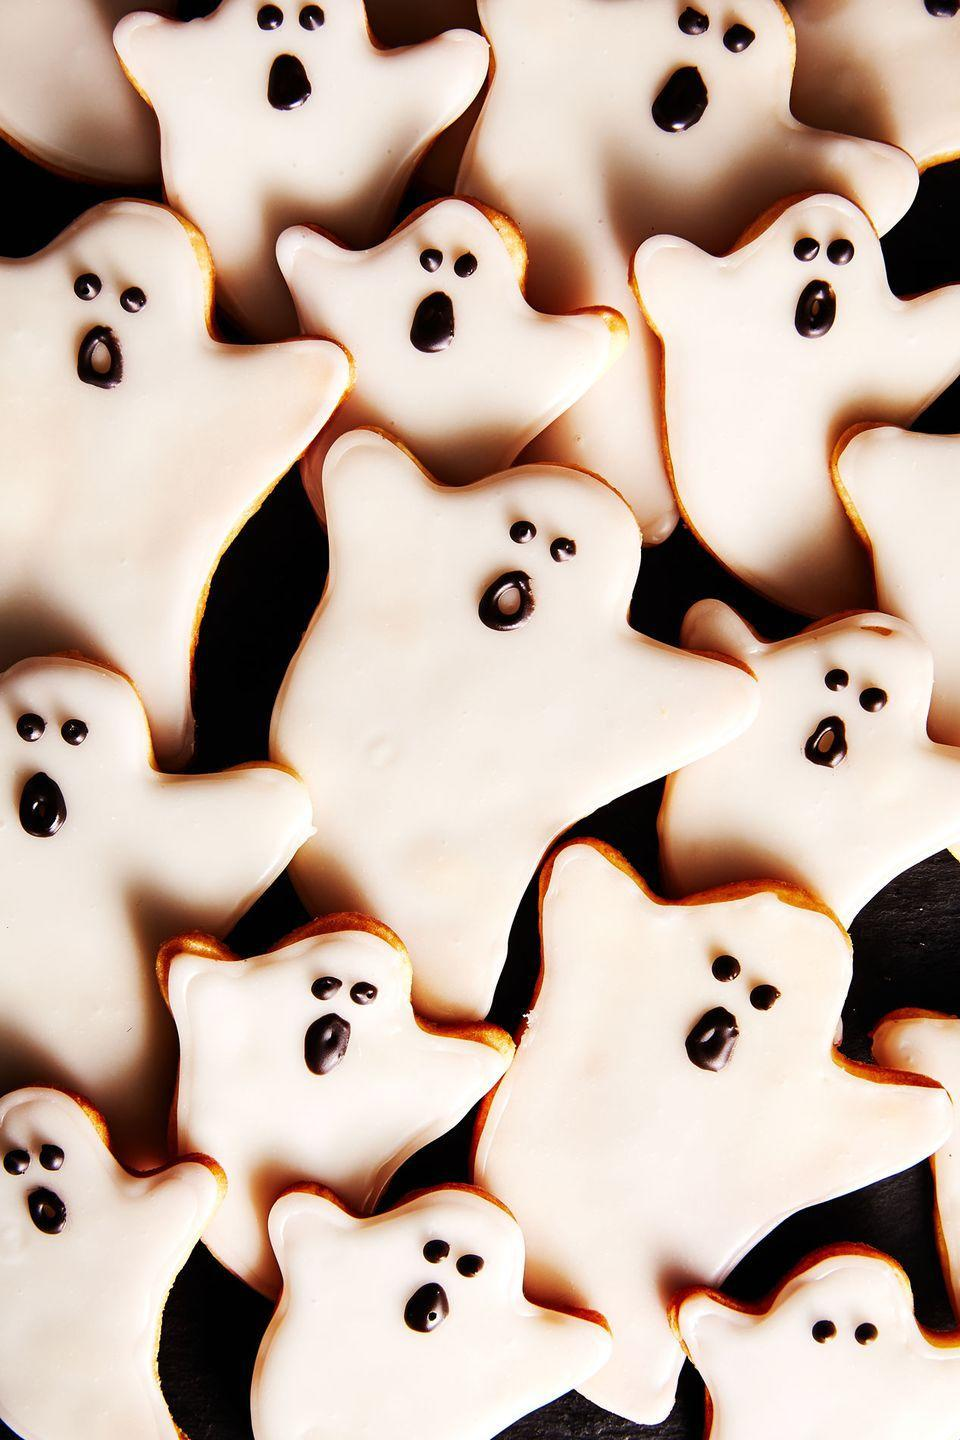 "<p>Just the right level of spooky.</p><p>Get the recipe from <a href=""http://www.delish.com/holiday-recipes/halloween/a28637917/ghost-cookies-recipe/"" rel=""nofollow noopener"" target=""_blank"" data-ylk=""slk:Delish"" class=""link rapid-noclick-resp"">Delish</a>.</p>"